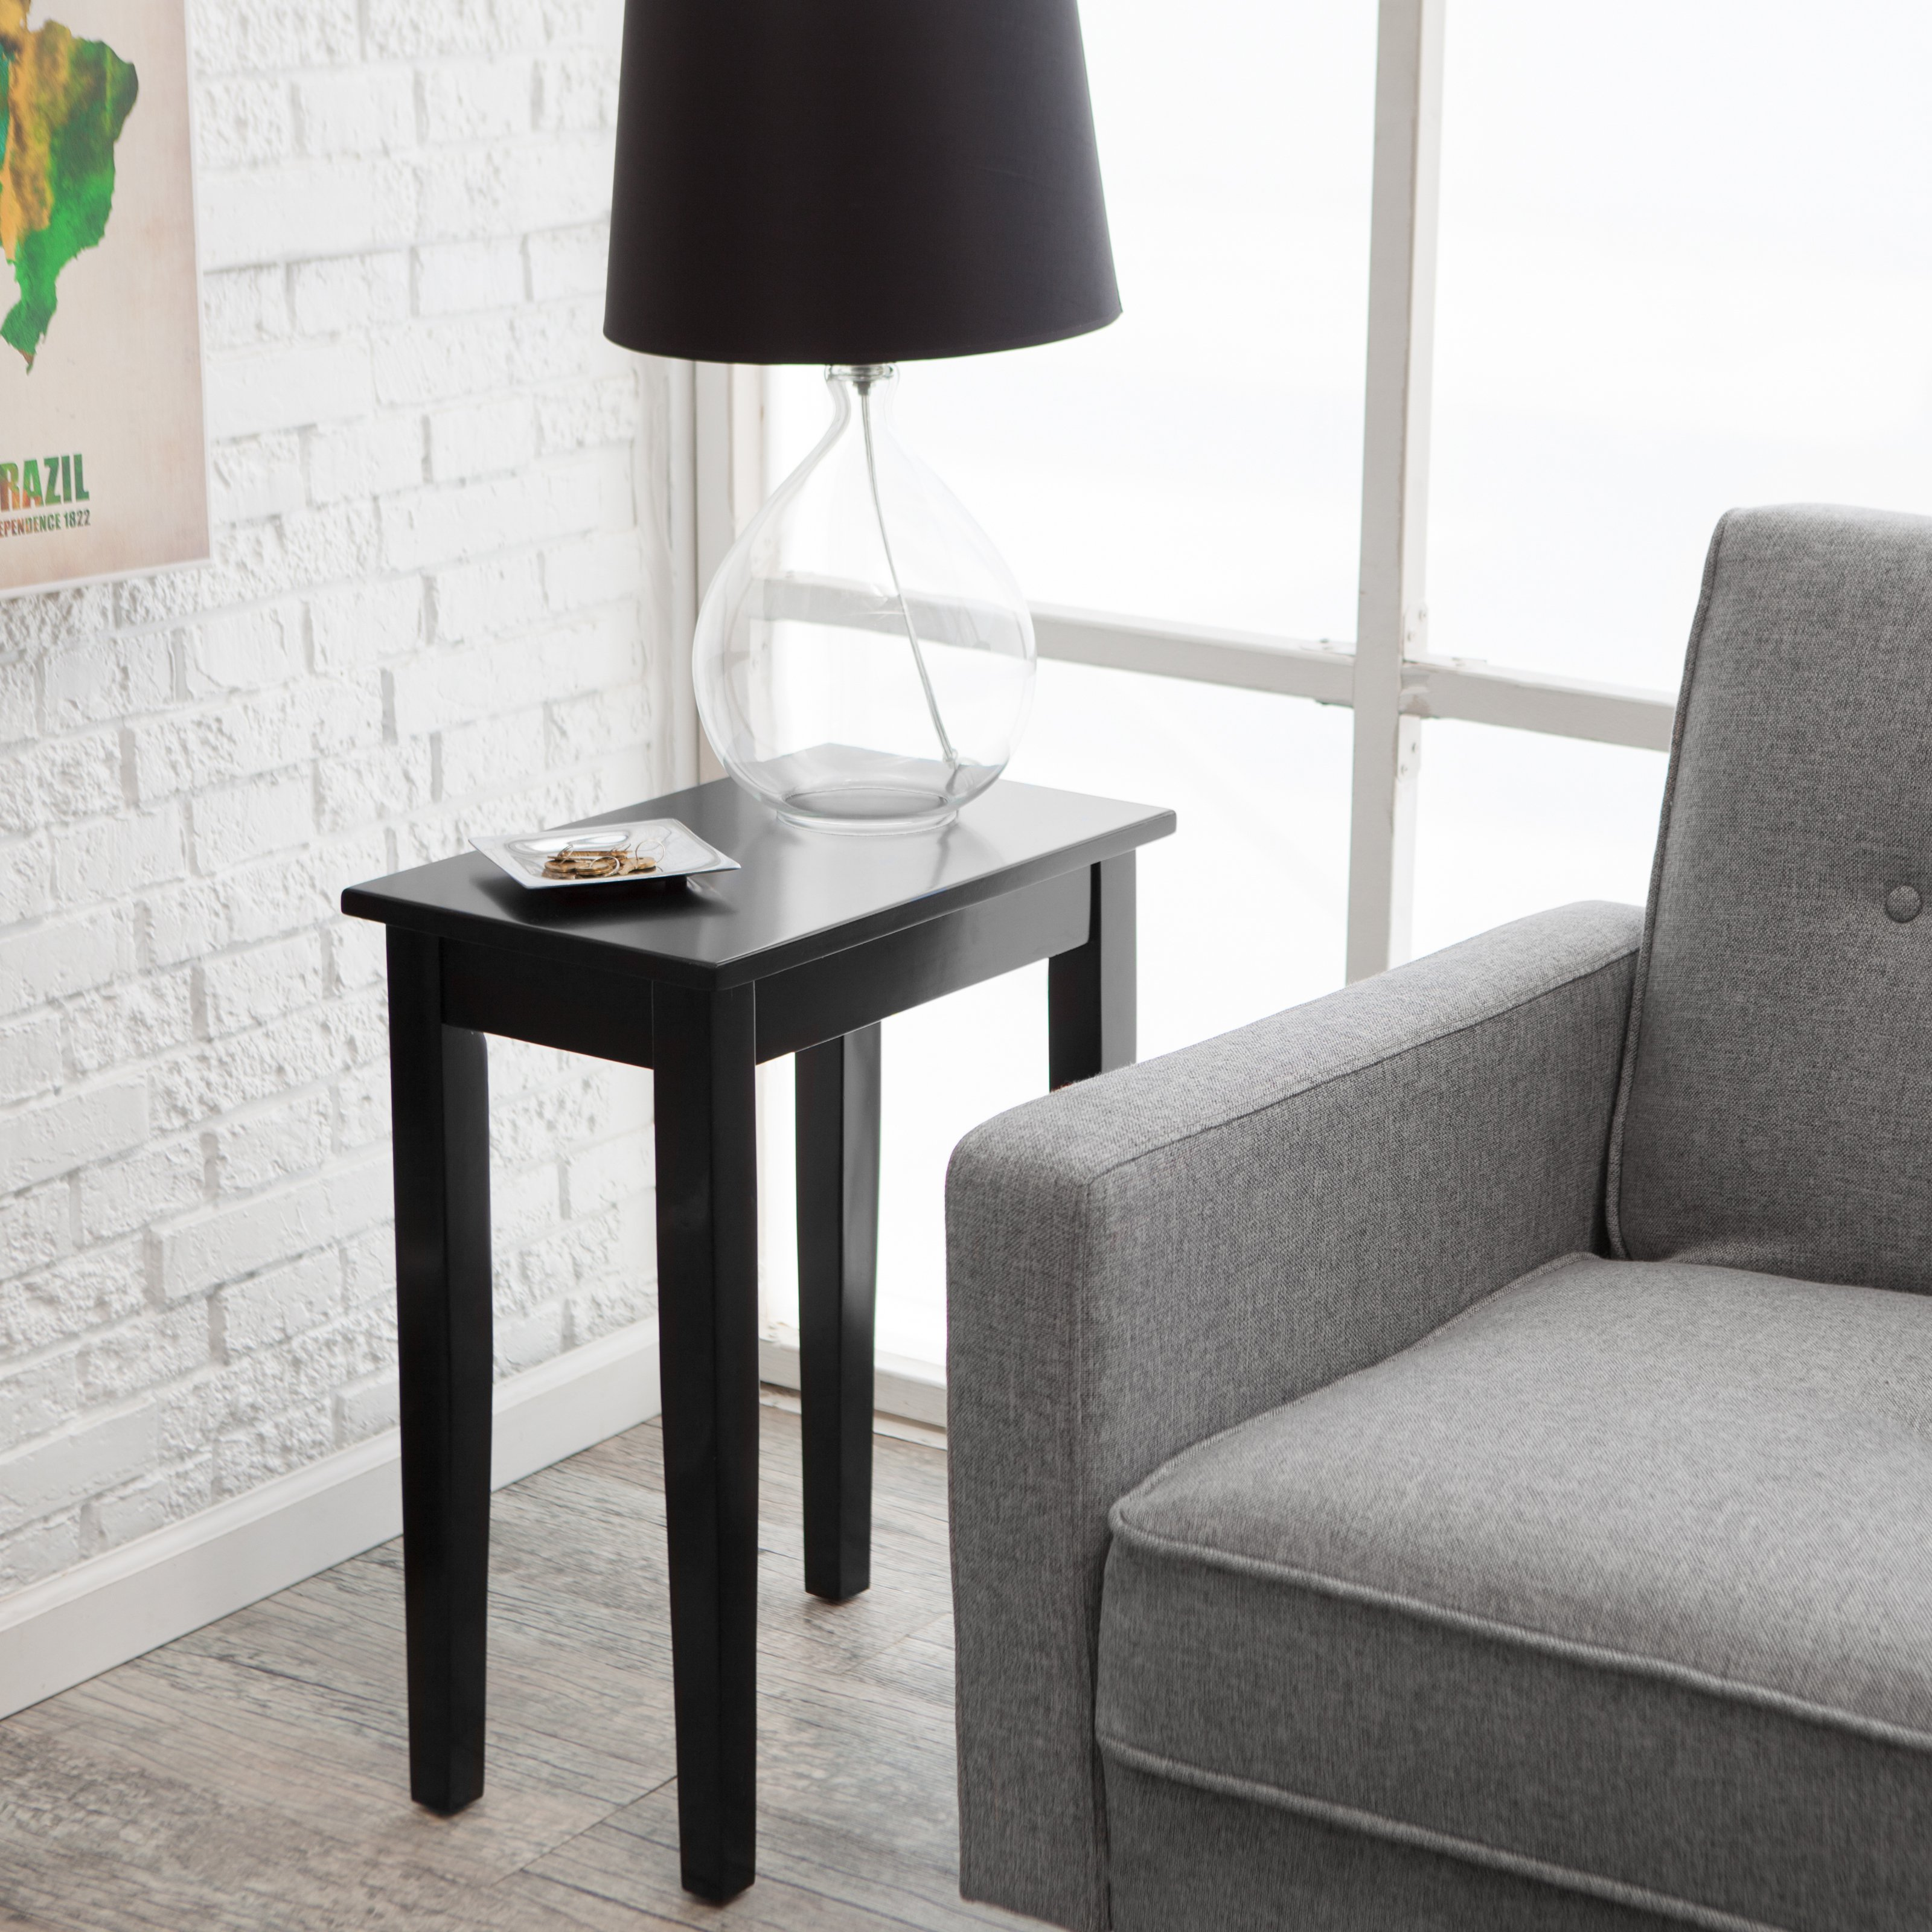 furniture small chairside tables for inspiring end table design oak ashley side sofa with drawer raymour and flanigan tuck away drawers narrow very accent hallway cabinet bathroom